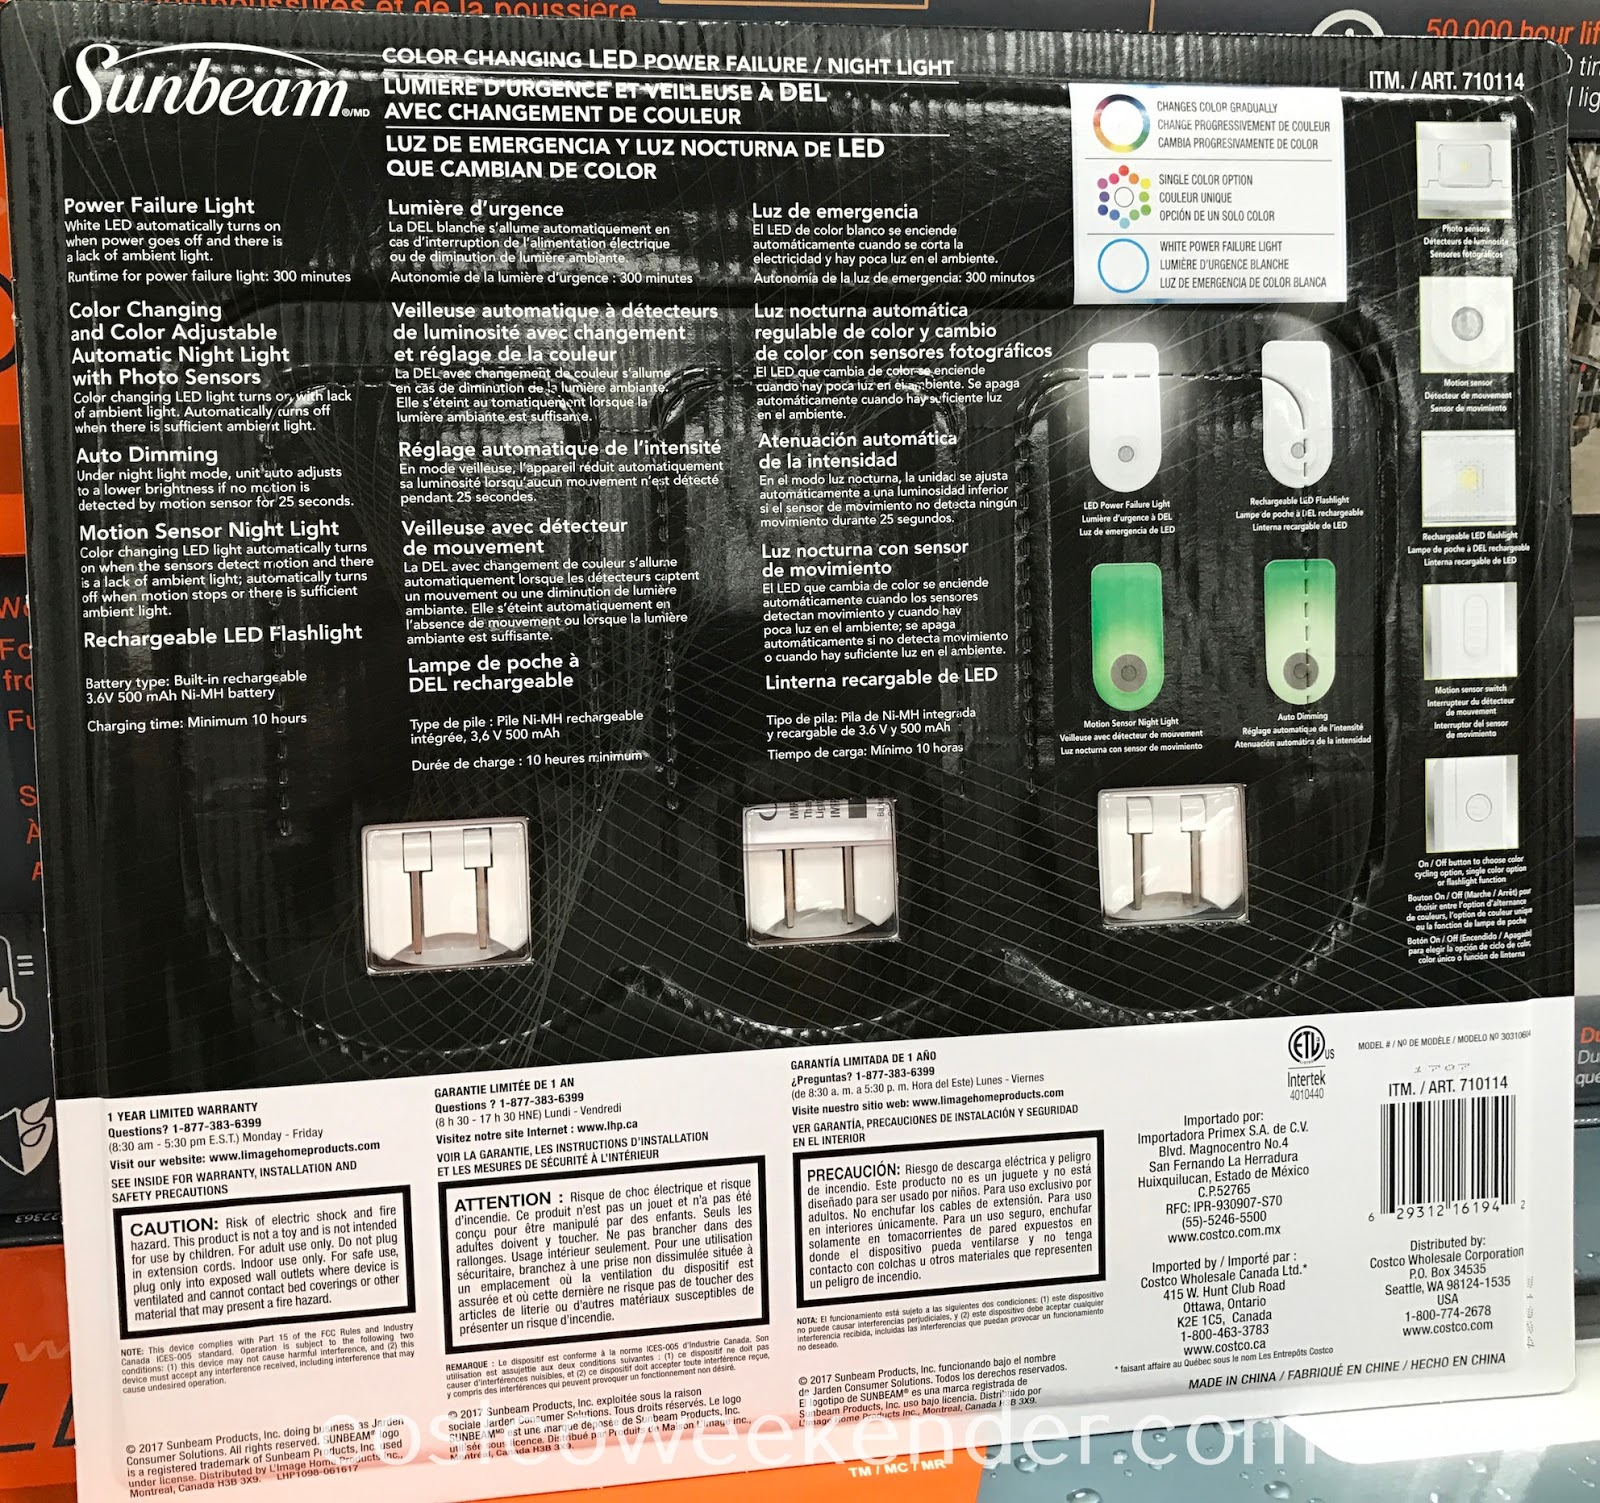 Costco 710114 - Sunbeam Color Changing LED Power Failure Night Light: good to have in every home